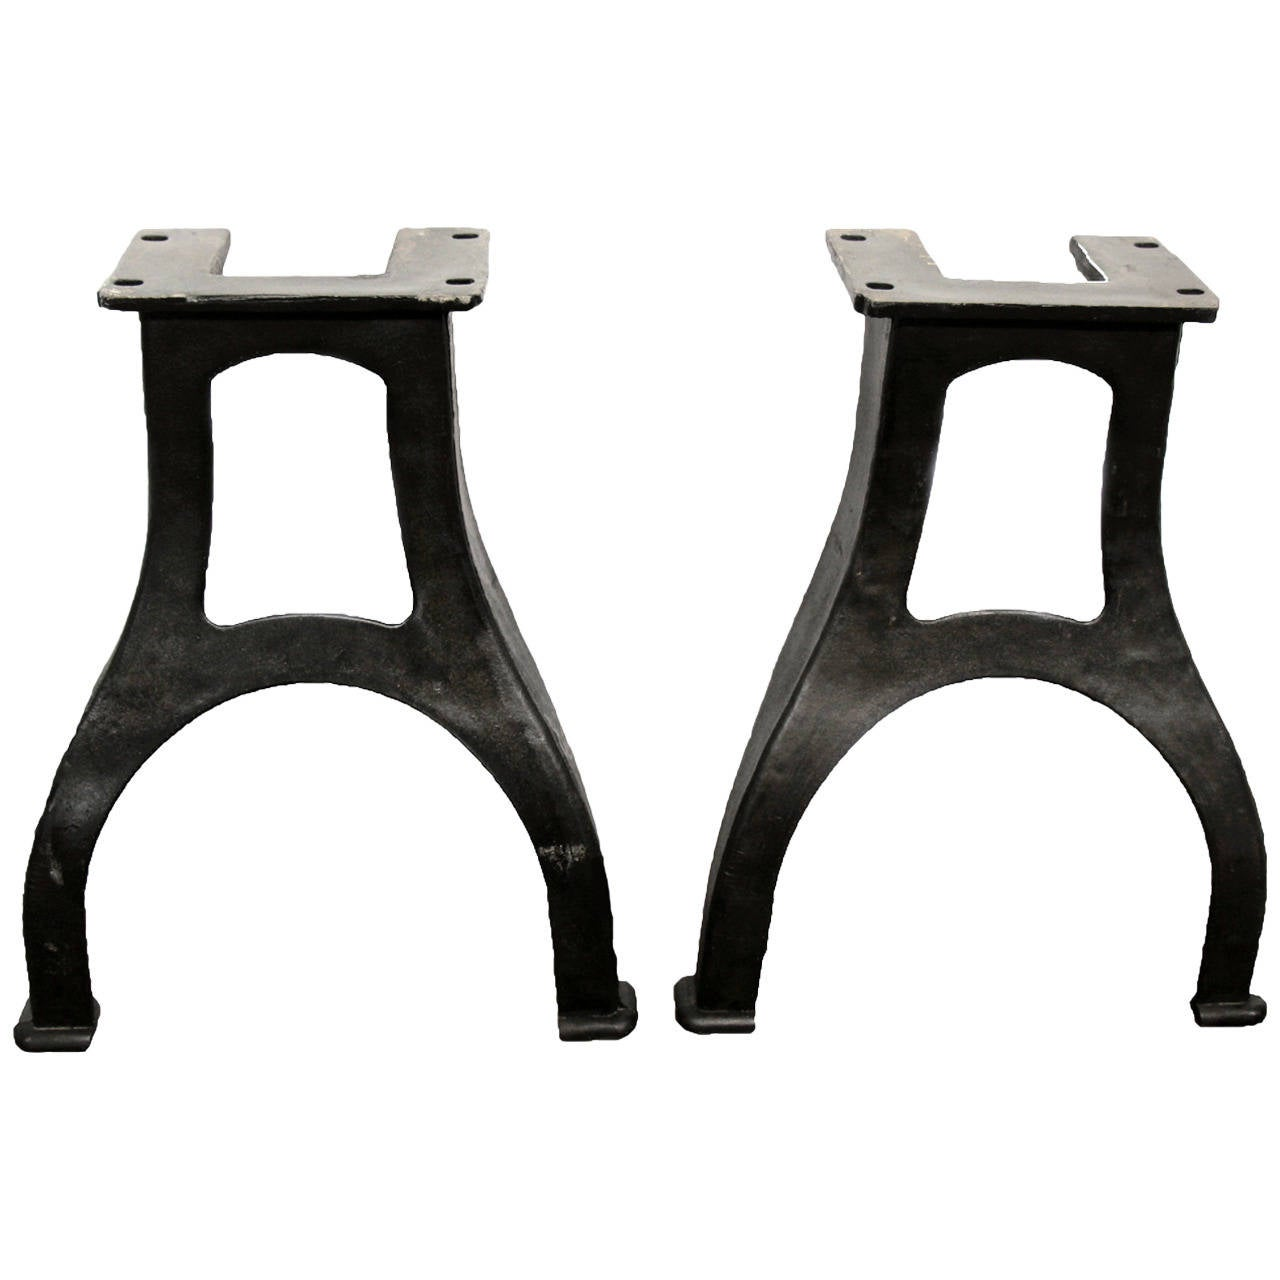 Pair Of Curved Victorian Style Industrial Machine Cast Iron Table Legs At 1stdibs